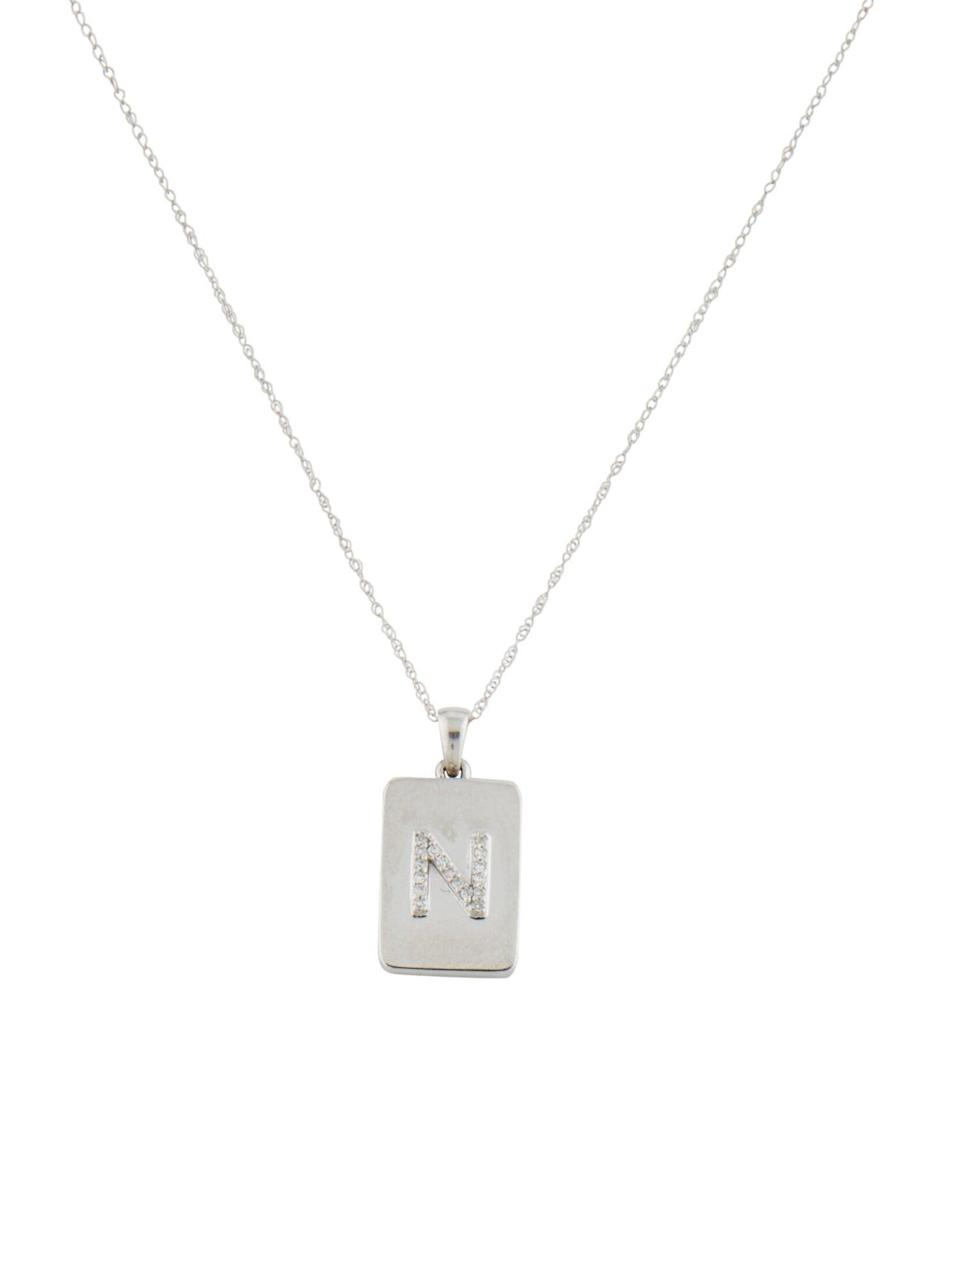 "<br><br><strong>The RealReal</strong> Rhodium-Plated 14K White Gold Initial 'N' Pendant Neckl, $, available at <a href=""https://go.skimresources.com/?id=30283X879131&url=https%3A%2F%2Fwww.therealreal.com%2Fproducts%2Fjewelry%2Fnecklaces%2Fpendant-necklace%2F14k-diamond-initial-n-pendant-necklace-7z4tx%3Fposition%3D76%23%21"" rel=""nofollow noopener"" target=""_blank"" data-ylk=""slk:The RealReal"" class=""link rapid-noclick-resp"">The RealReal</a>"